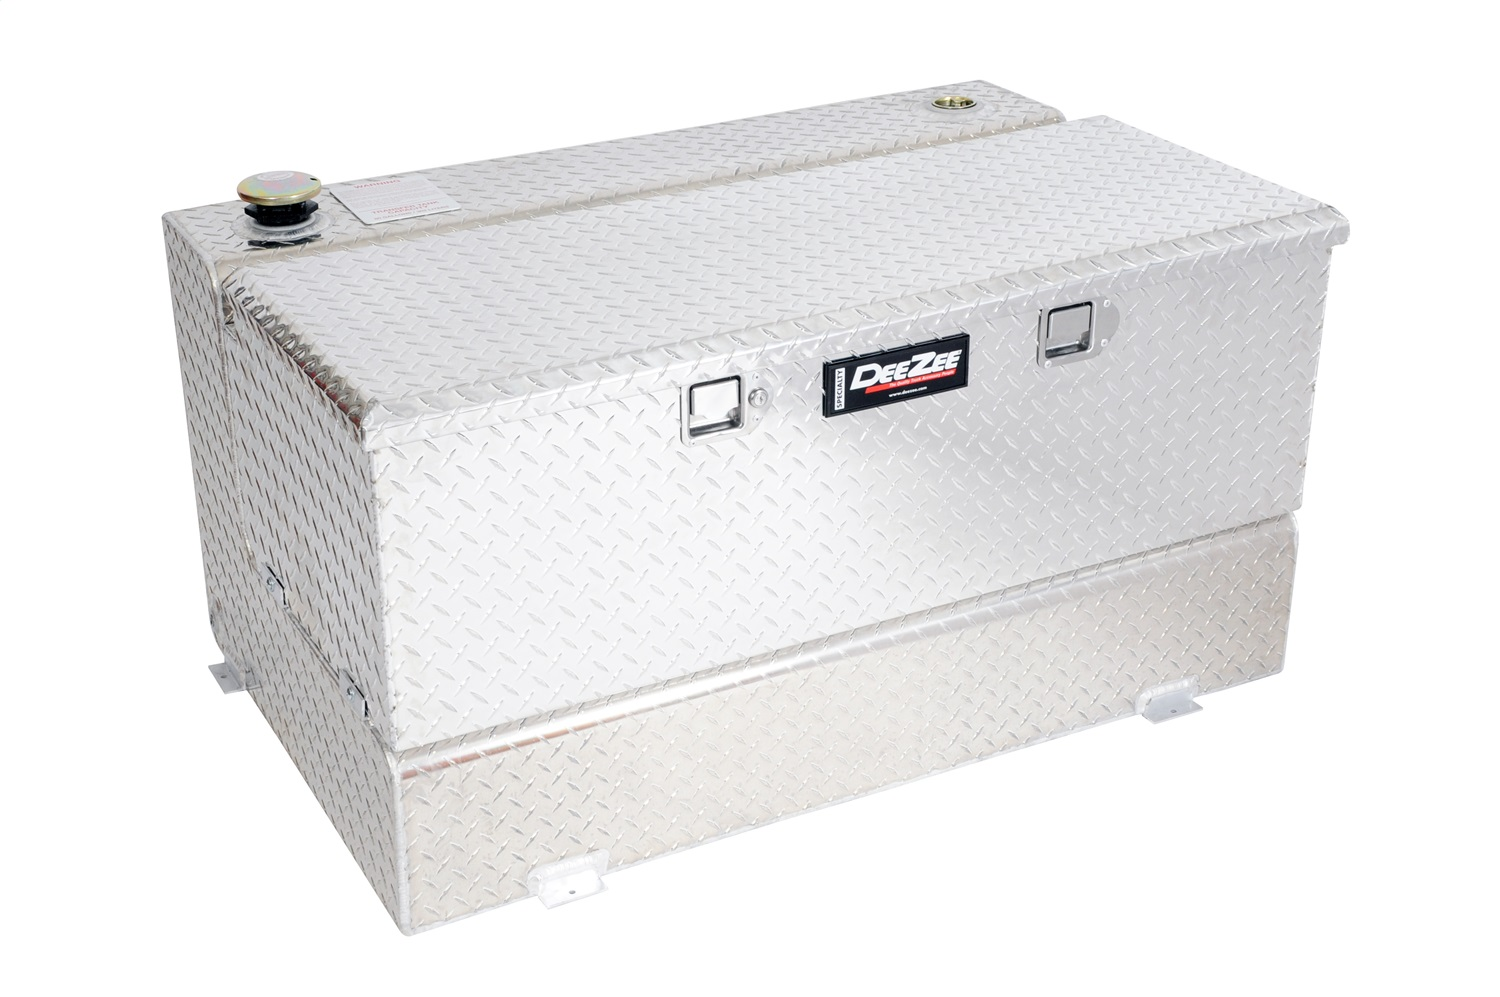 Specialty Series Combo L-Shaped Tool Box/Liquid Transfer Tank, 0.125 Aluminum Brite-Tread Uncoated, Volume 92 Gallons, L 46.75 in. x W 32.75 in. x H 25.5 in.